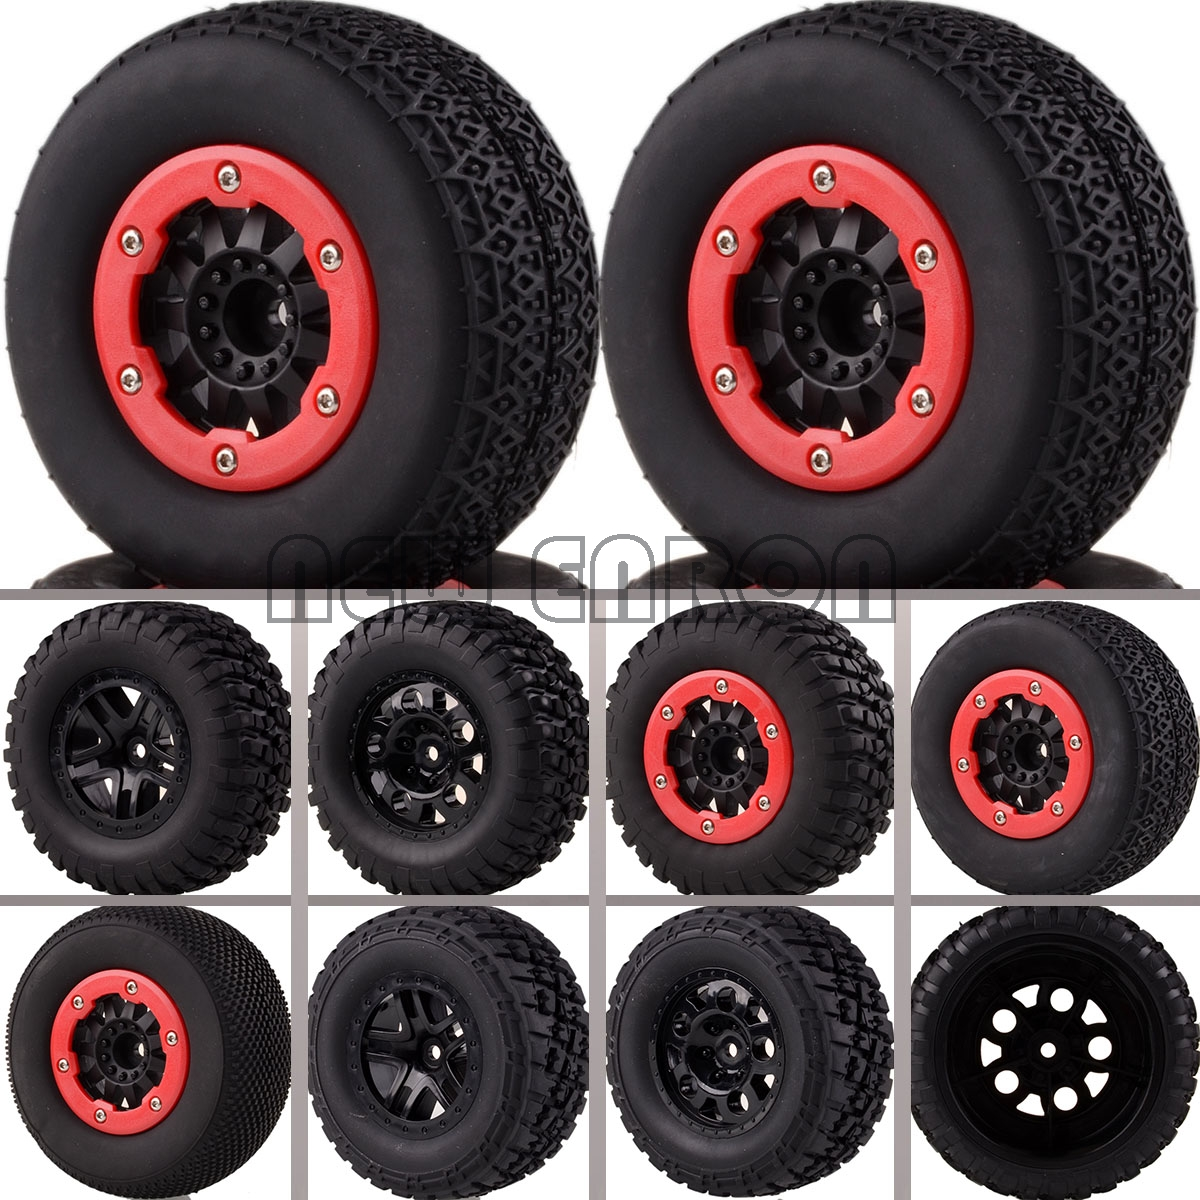 NEW ENRON 4PCS Bead-Lock Short Course Tire & Wheel 12MM HEX 1182-(12-17) FOR 1/10 Traxxas Slash 4x4 HPI 4pcs set rc parts 12mm hex bead loc short course ruber tire rims for hpi hsp rc 1 10 traxxas slash